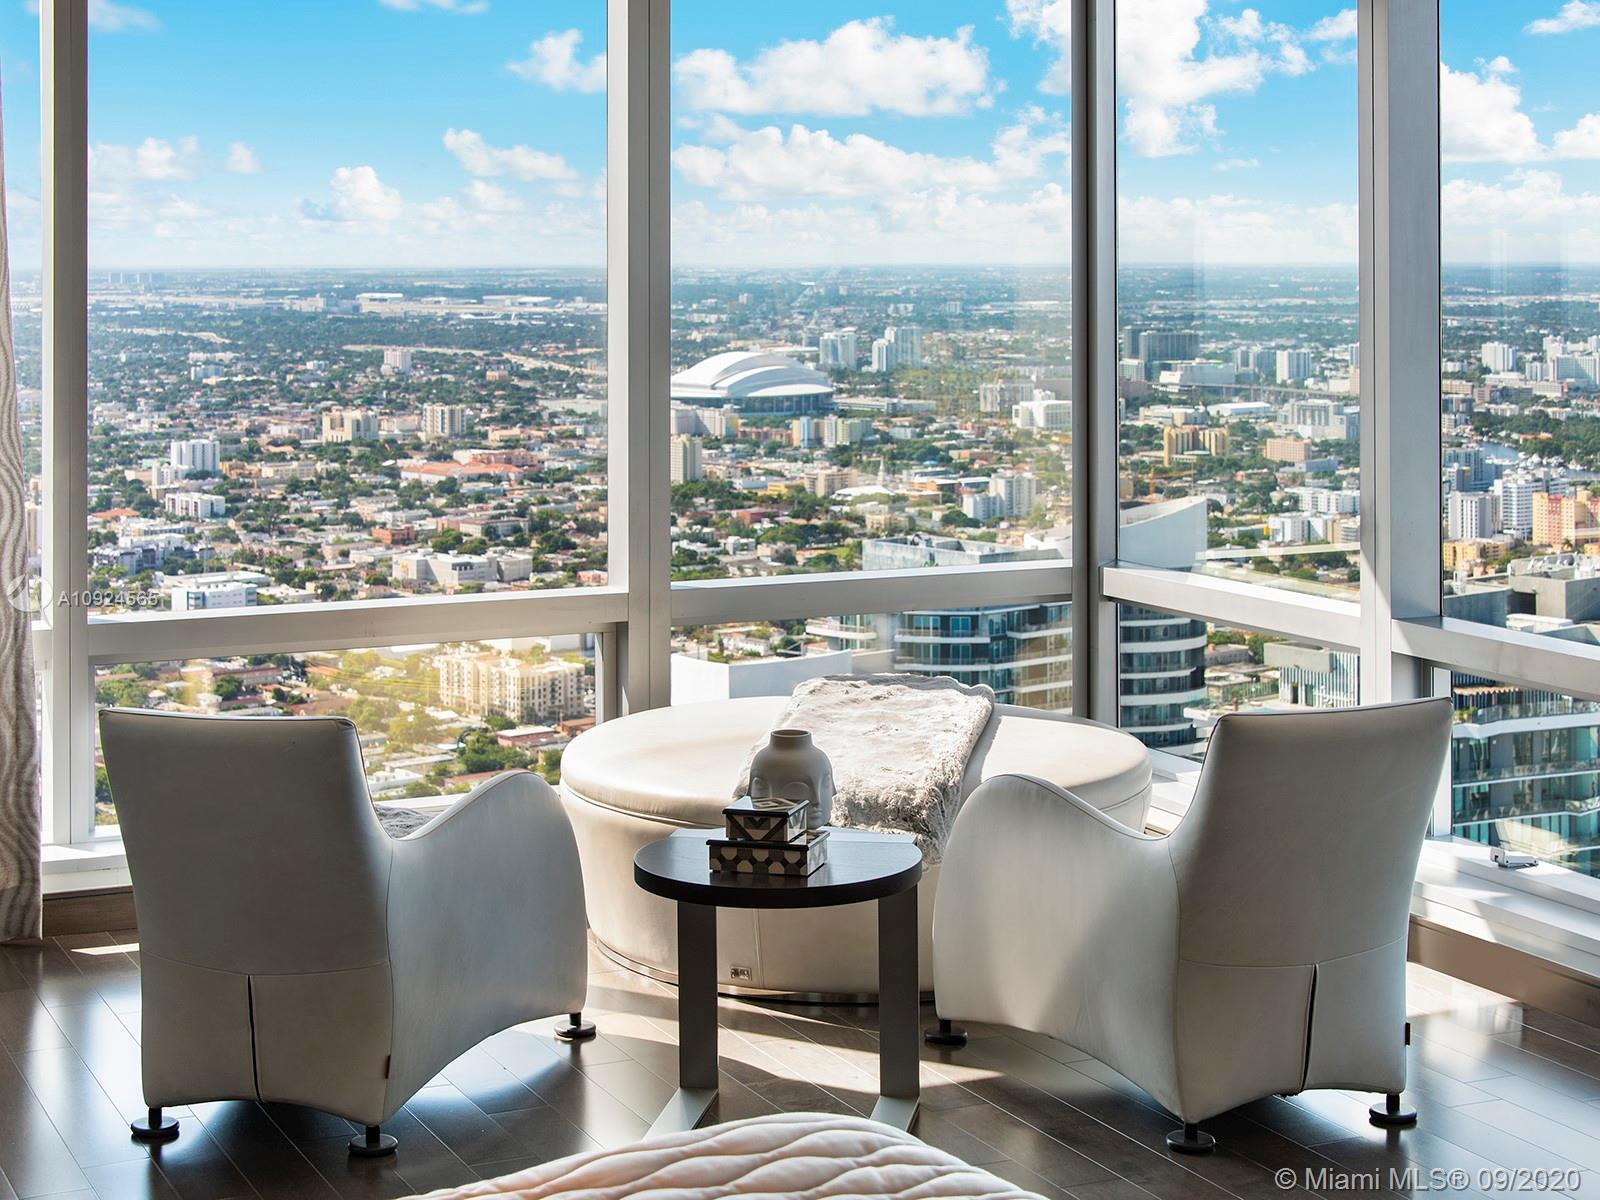 Rising 68 stories above the Miami skyline, this extraordinary PH offers sweeping unobstructed views